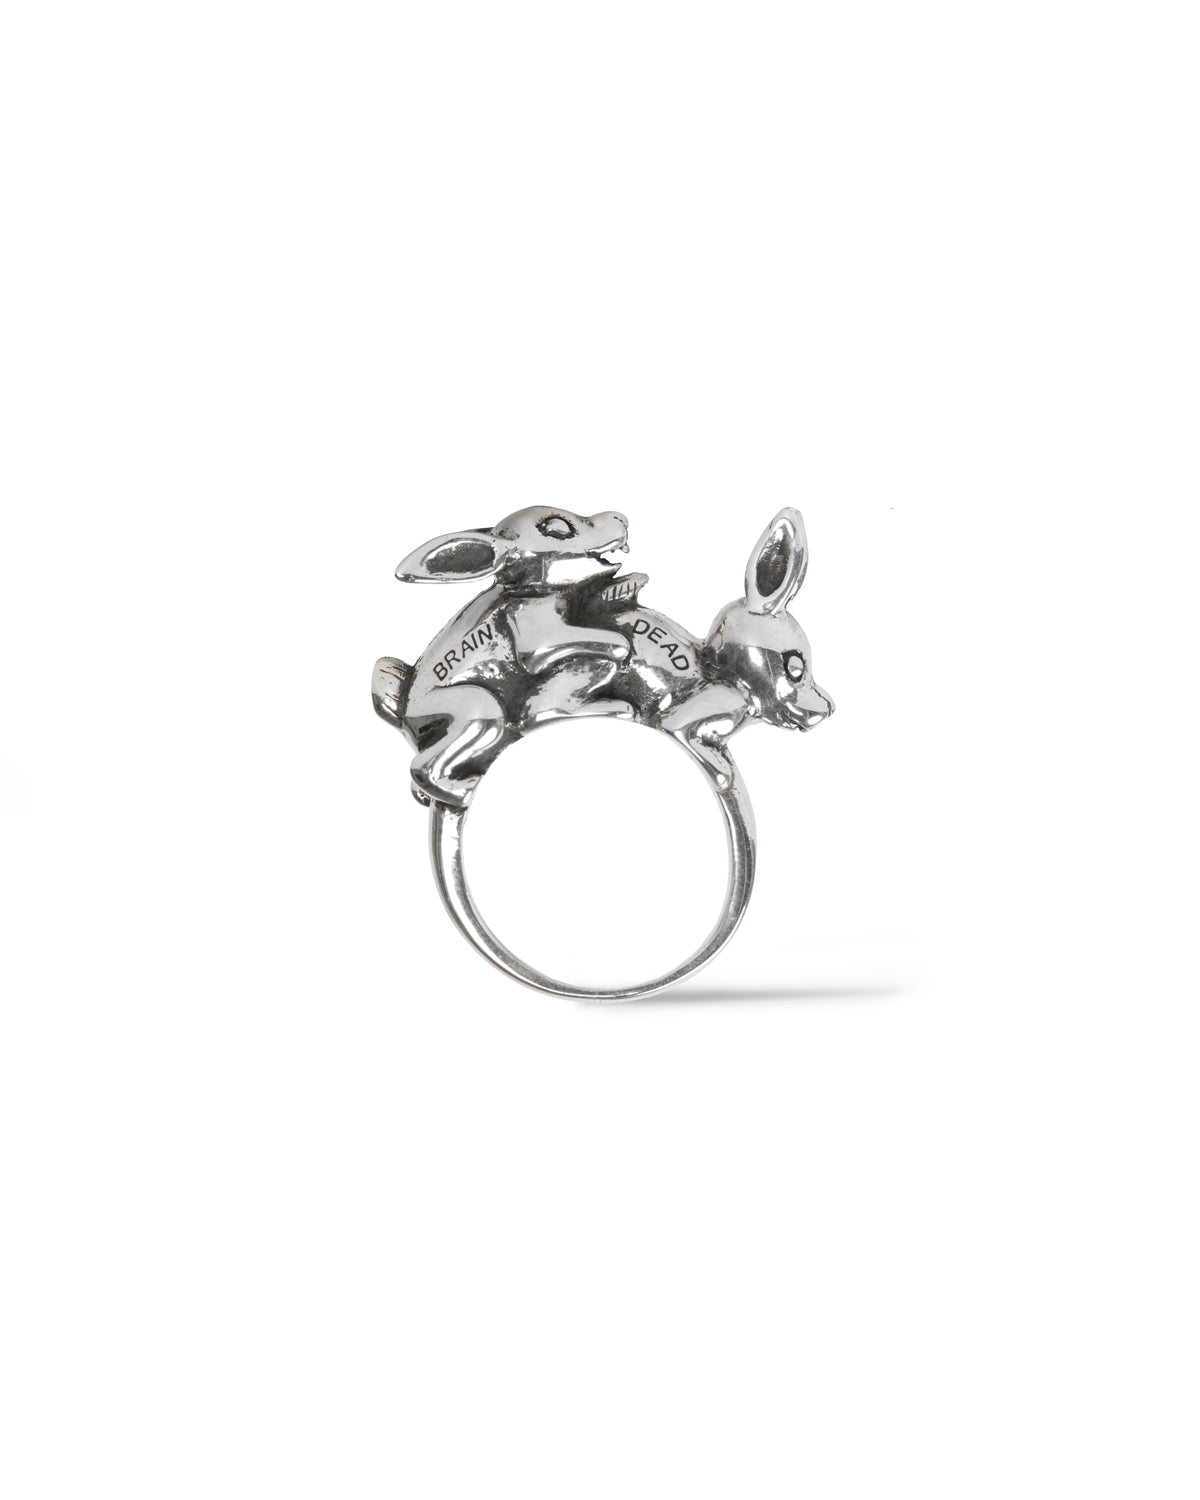 Bunny Love Silver Oxidized Ring - Silver